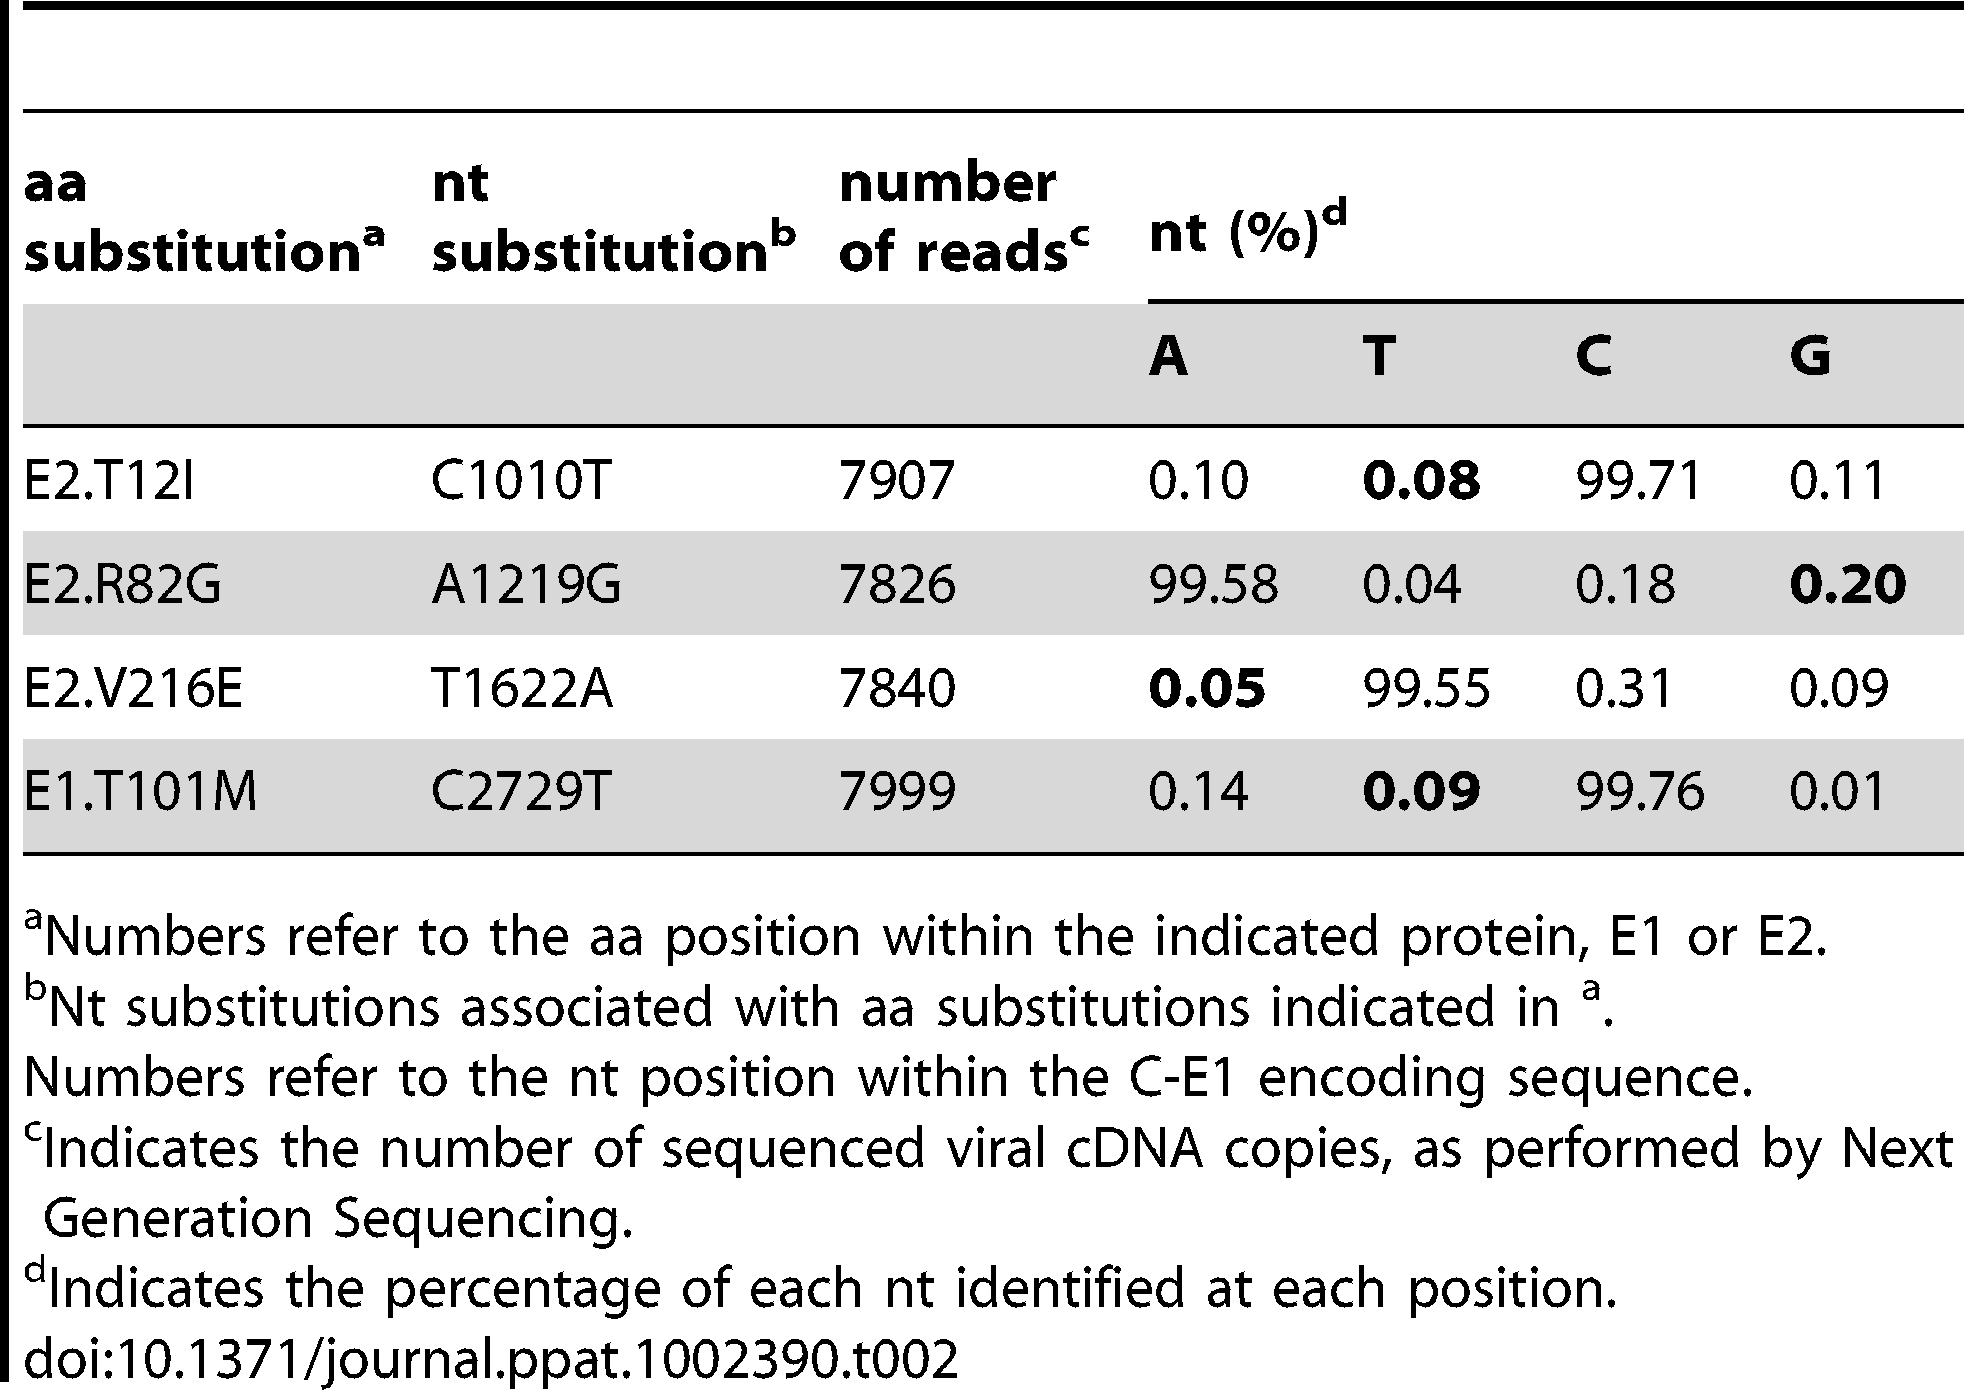 Next Generation Sequencing of non-clonal CHIK/Irr after 8 rounds under mAb pressure.